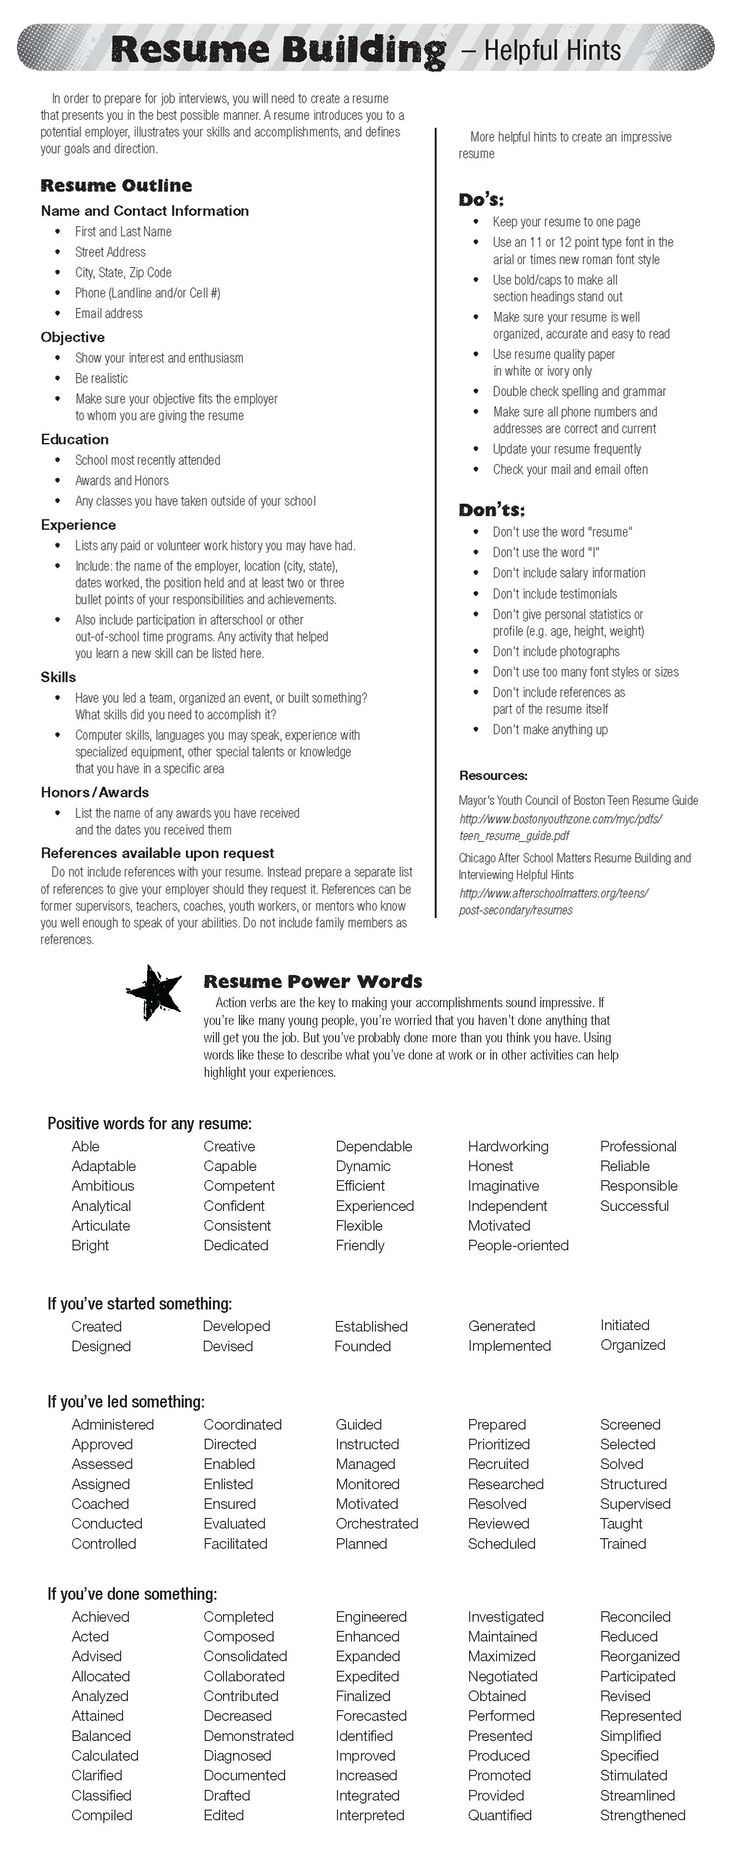 Opposenewapstandardsus  Winning  Ideas About Resume On Pinterest  Cv Format Resume Cv And  With Likable  Ideas About Resume On Pinterest  Cv Format Resume Cv And Resume Templates With Adorable What Does A Good Resume Look Like Also Best Objective For Resume In Addition Phlebotomist Resume And Online Resume Maker As Well As Security Officer Resume Additionally Investment Banking Resume From Pinterestcom With Opposenewapstandardsus  Likable  Ideas About Resume On Pinterest  Cv Format Resume Cv And  With Adorable  Ideas About Resume On Pinterest  Cv Format Resume Cv And Resume Templates And Winning What Does A Good Resume Look Like Also Best Objective For Resume In Addition Phlebotomist Resume From Pinterestcom